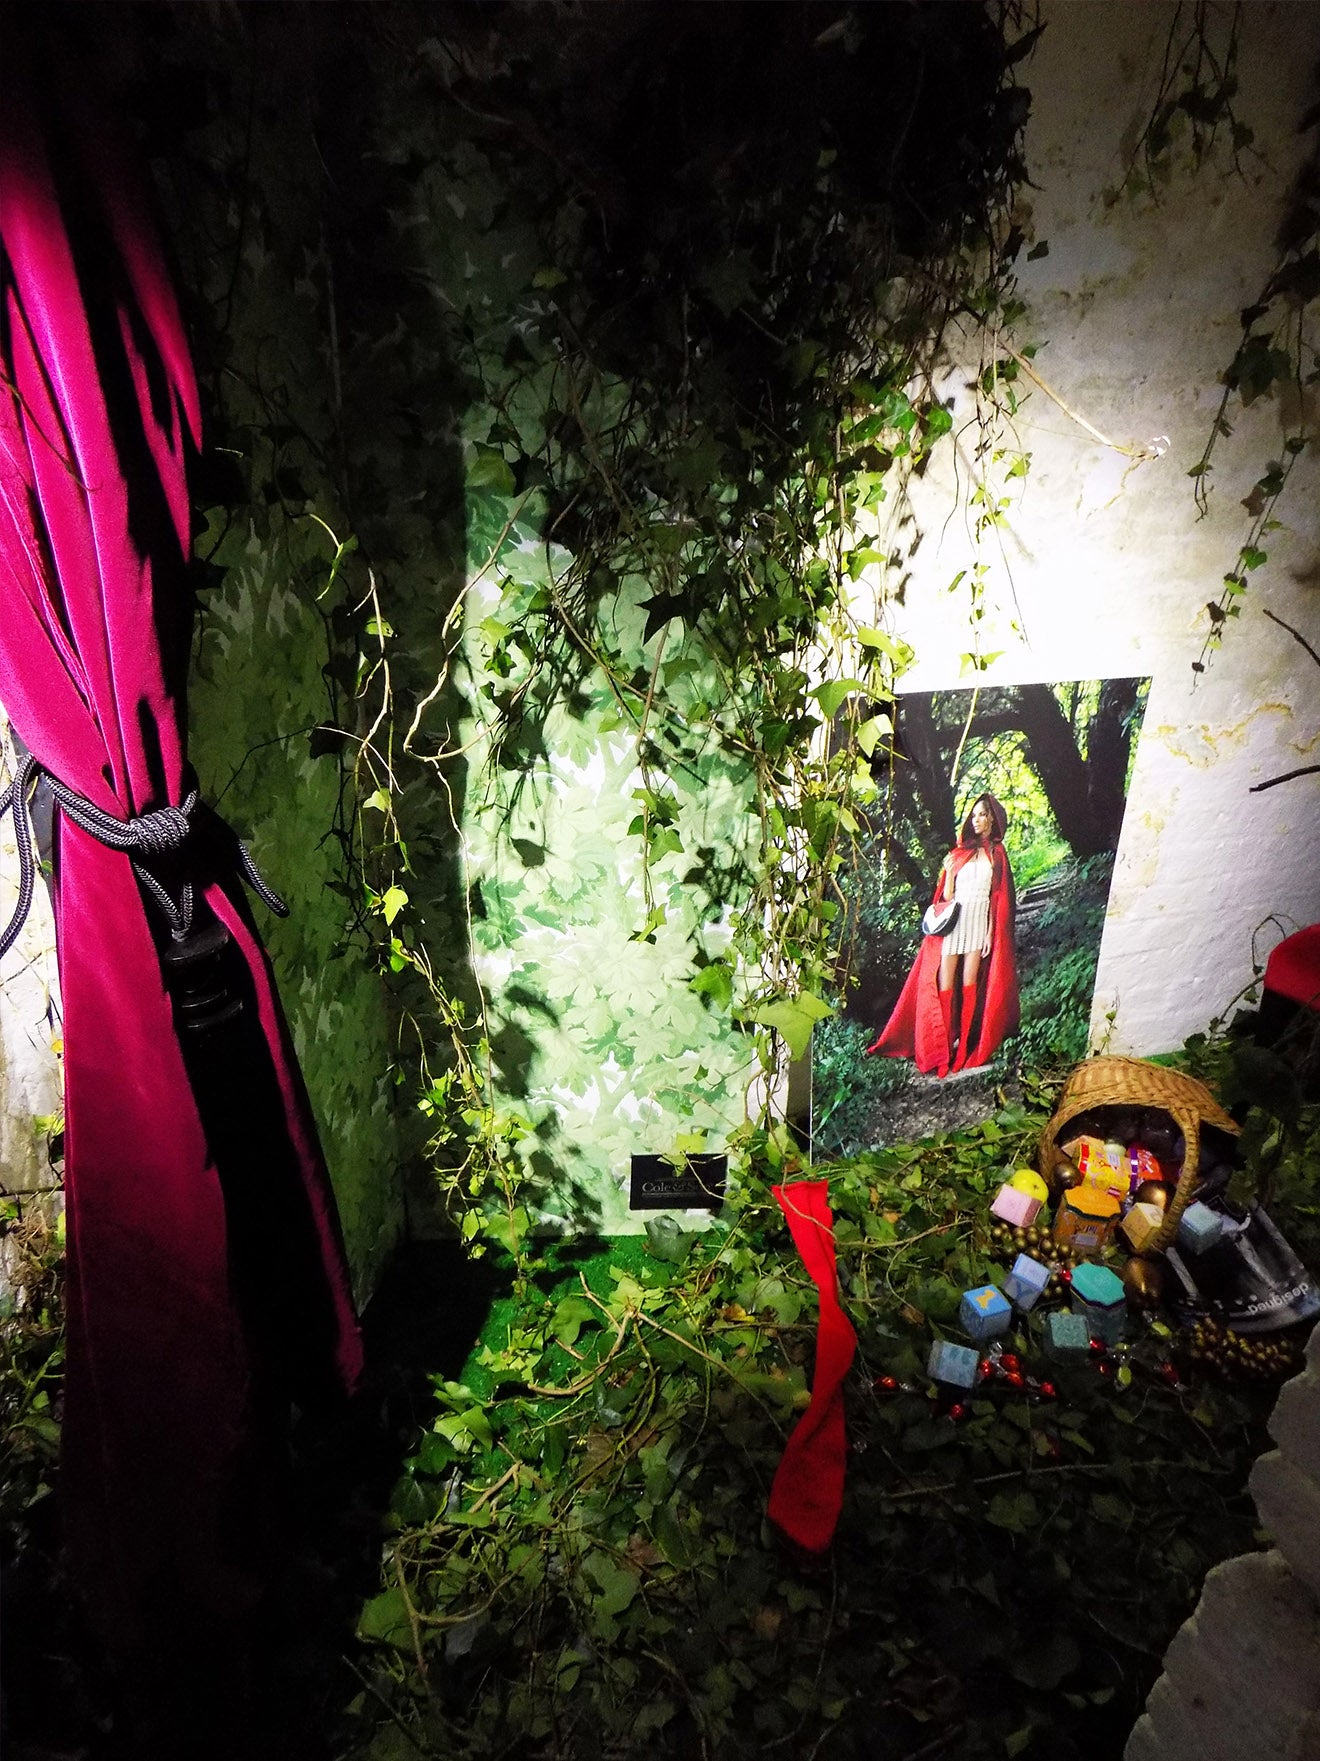 Little red riding hood style room at the Designed magazine launch party